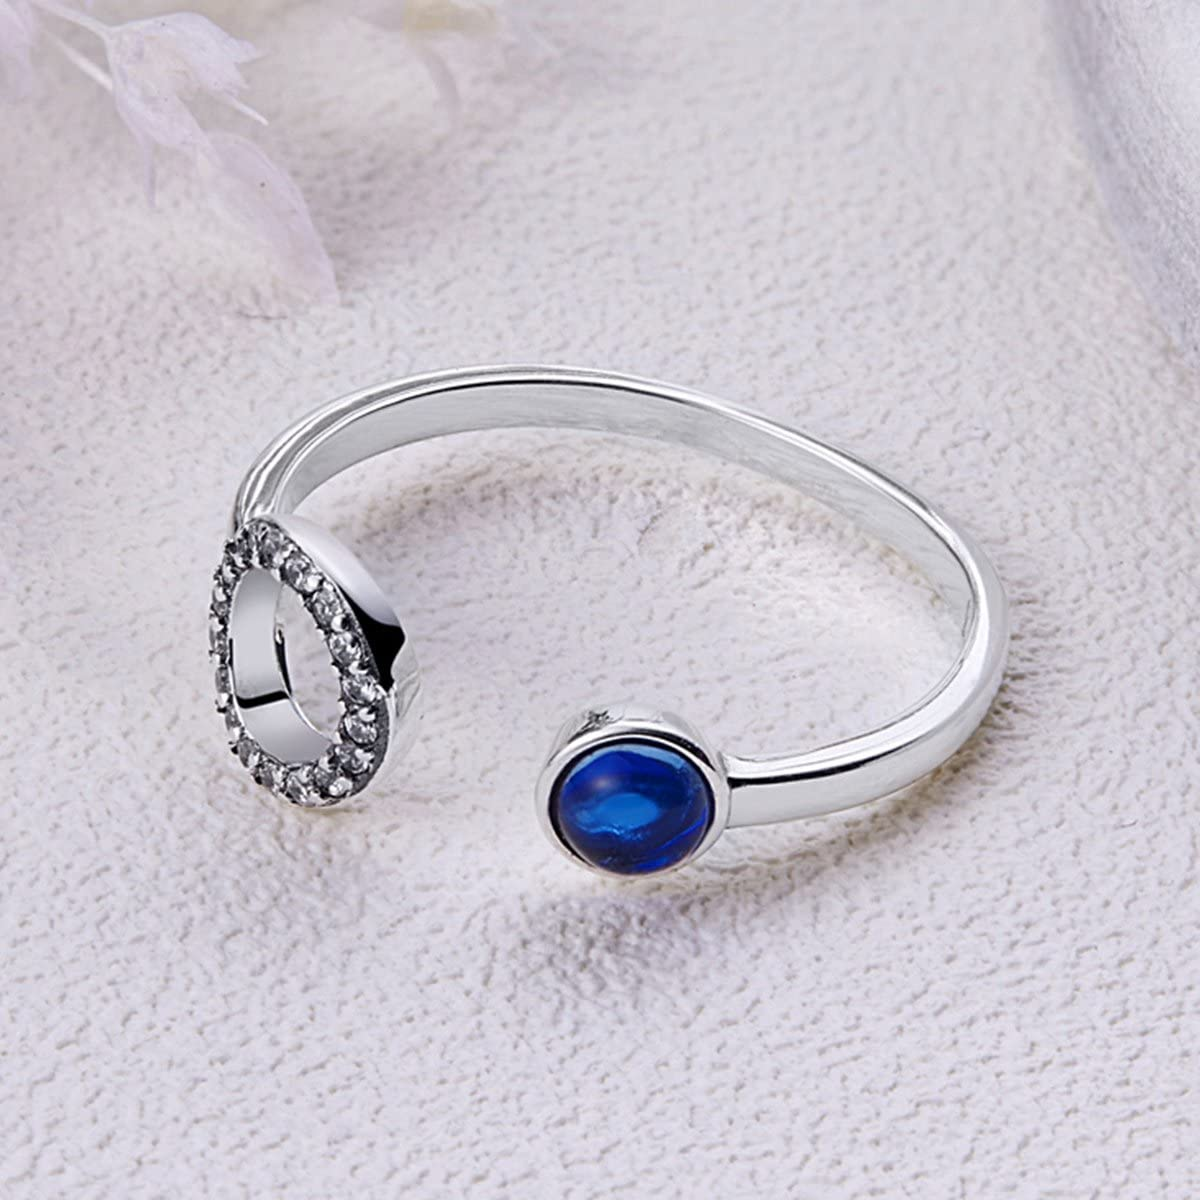 The Kiss Minimalism Classic Circle Open 925 Sterling Silver Adjustable Ring Blue CZ